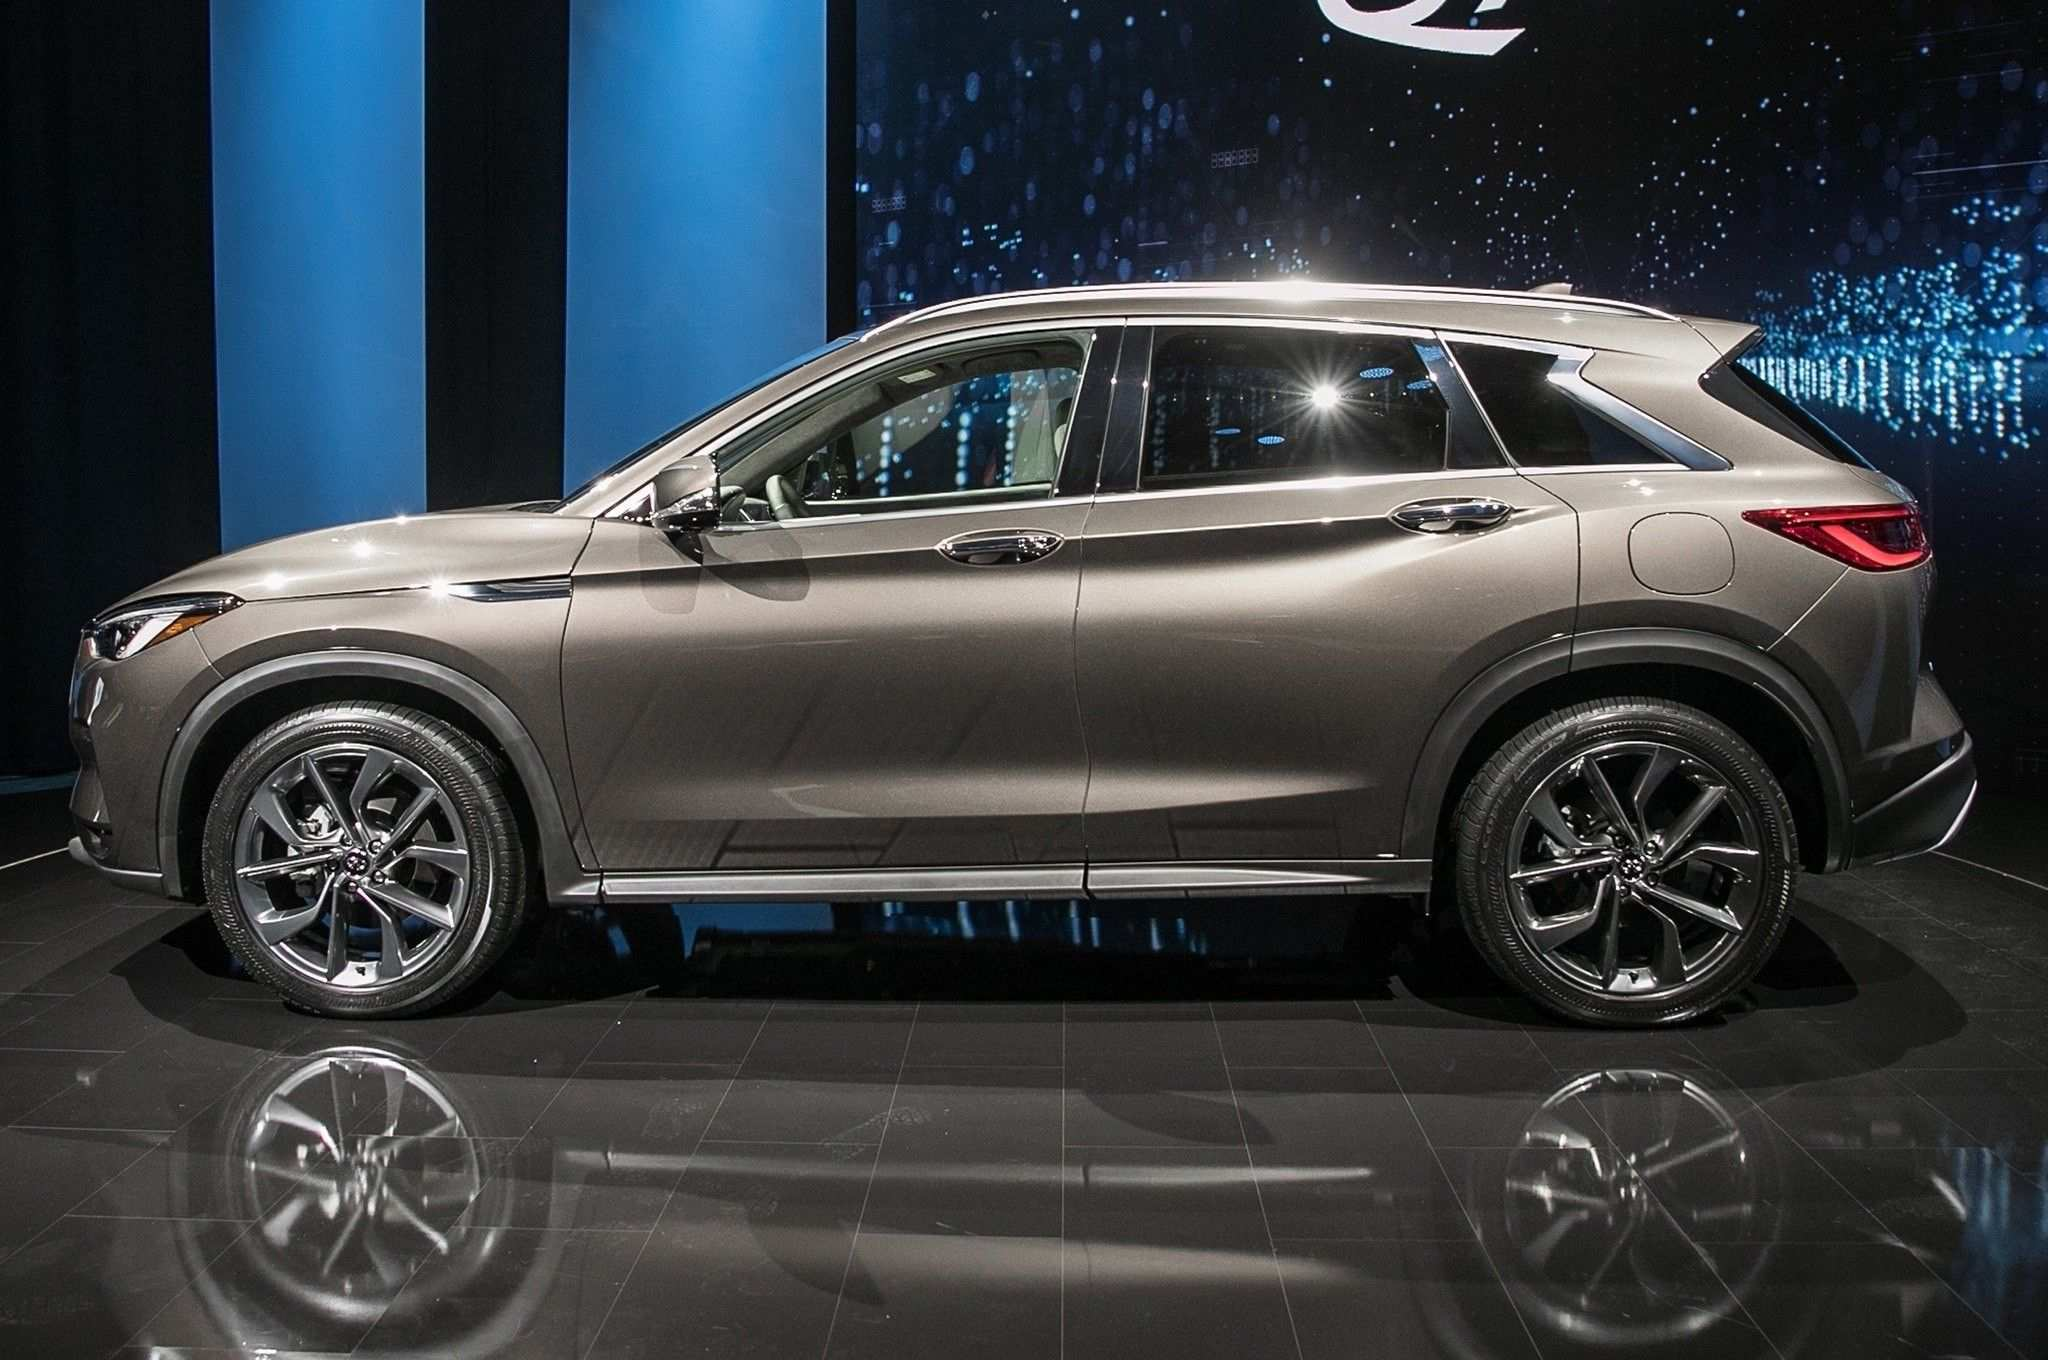 42 Gallery of The Infiniti Jx35 2019 Overview Picture with The Infiniti Jx35 2019 Overview